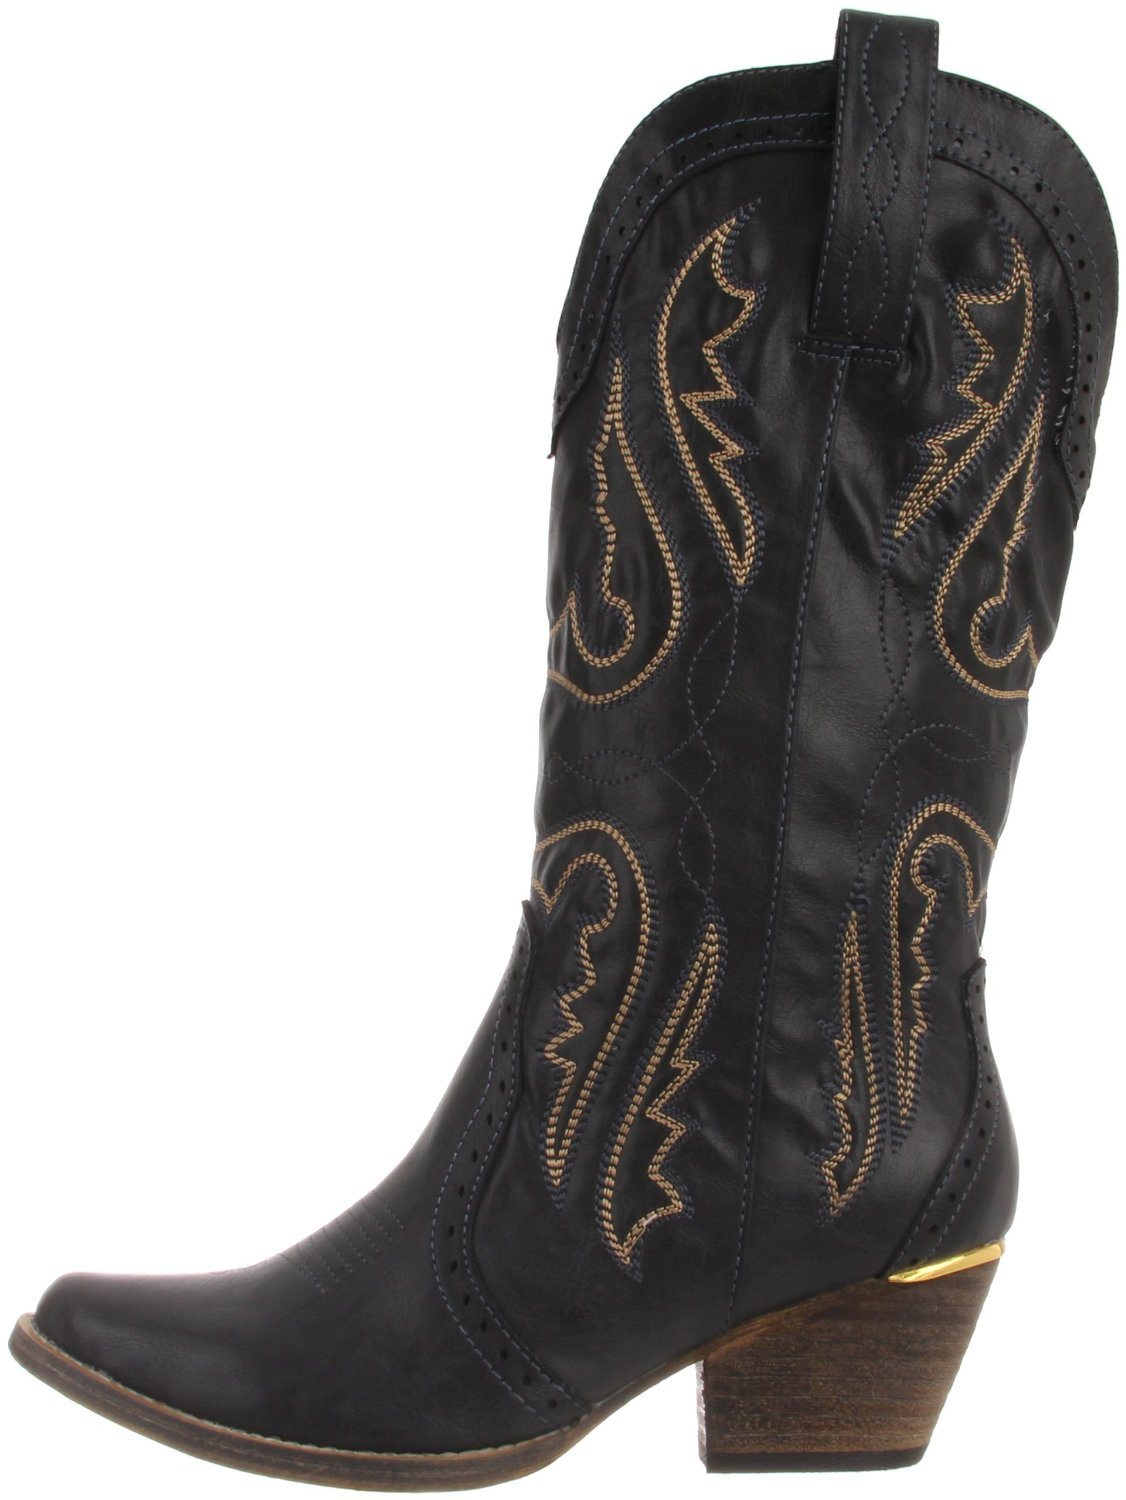 Fashion Cowboy Boots For Women Cheap i12NAvvY